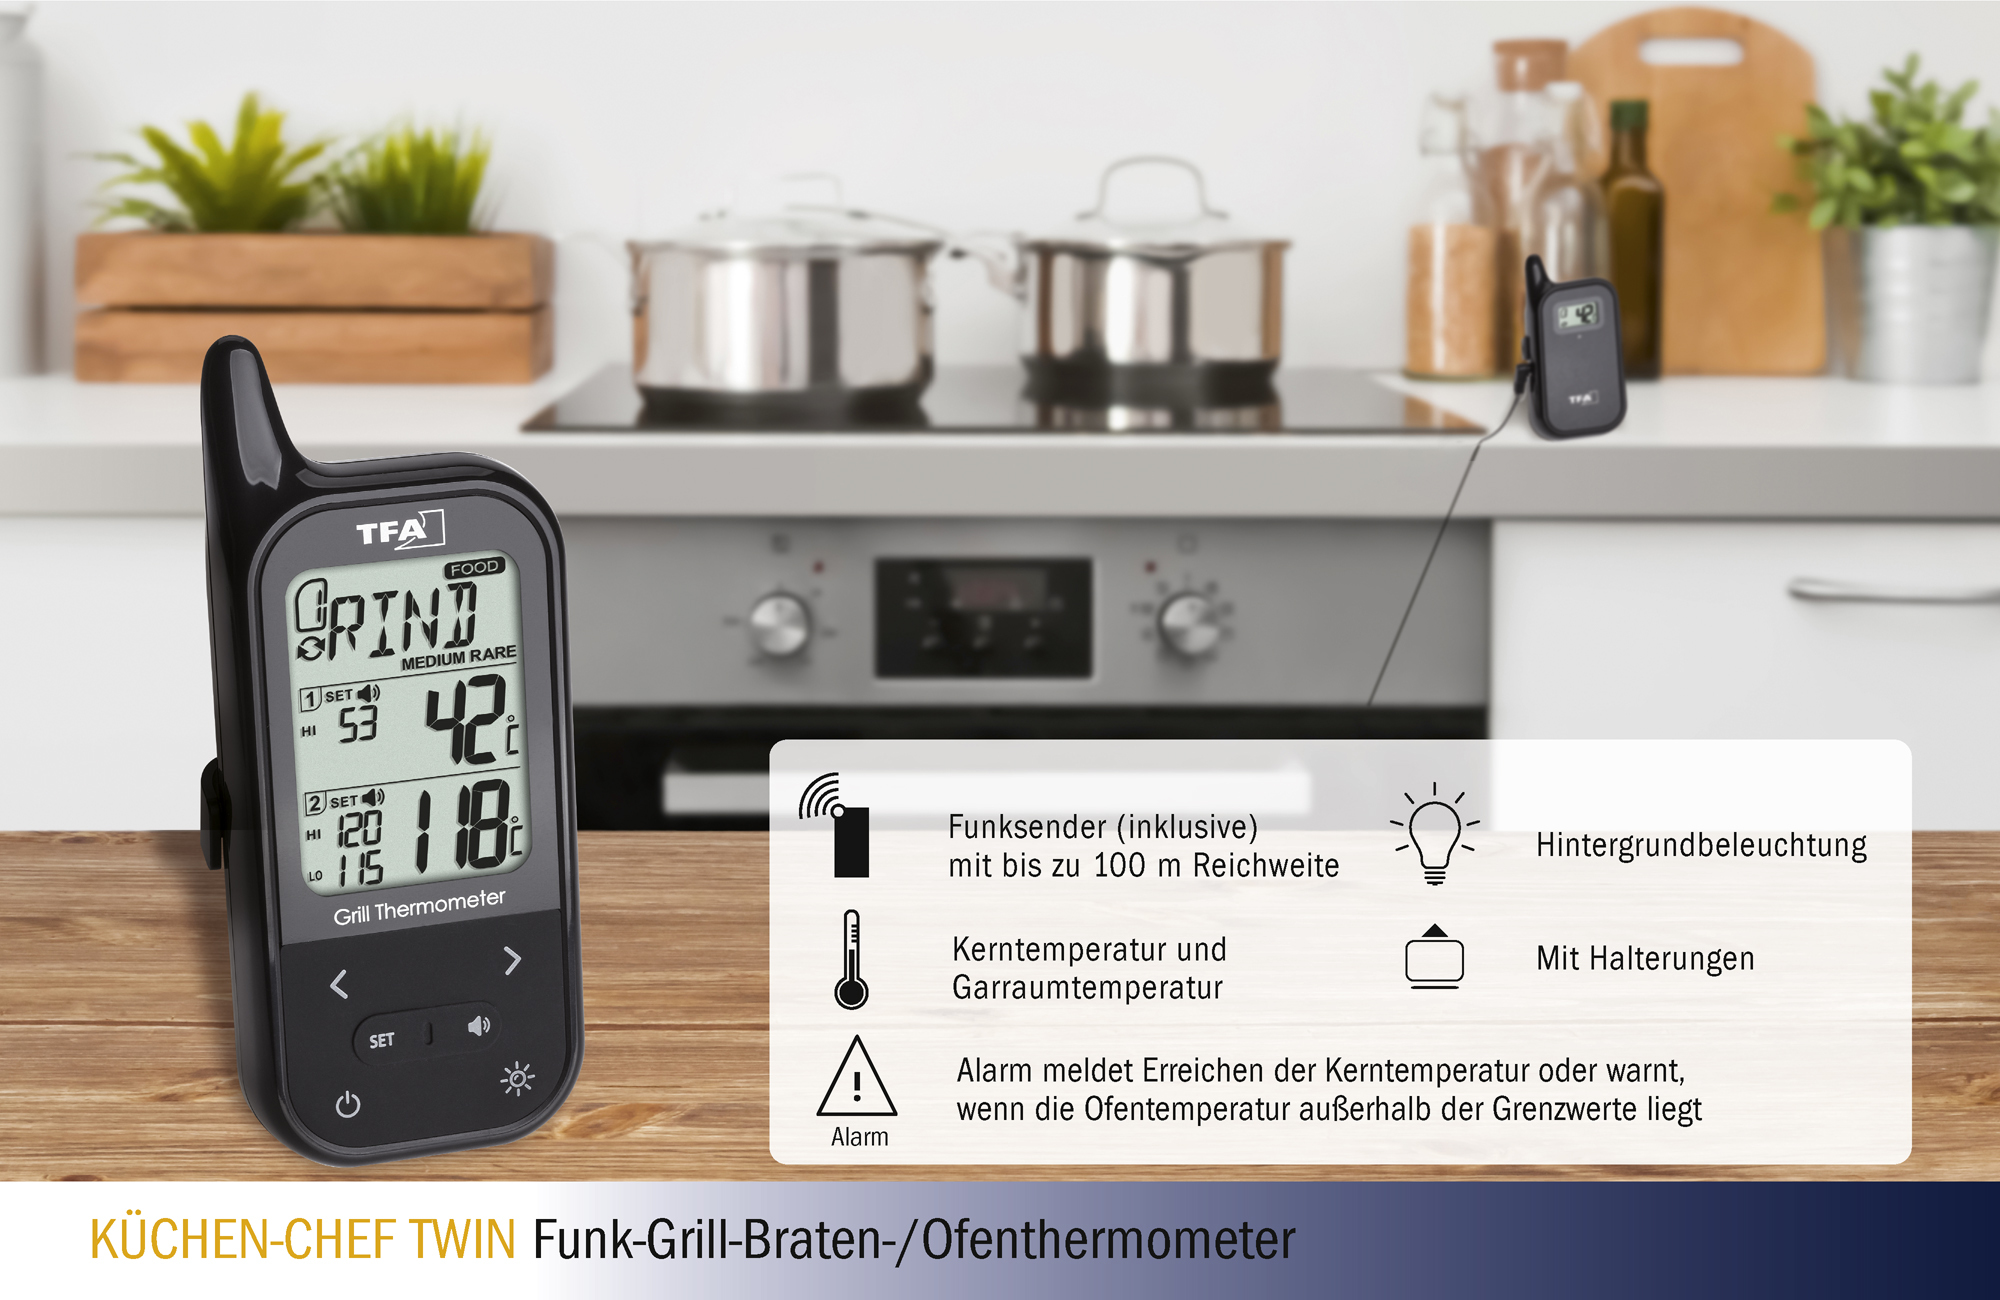 Küchenchef Thermometer Wireless Bbq Meat Oven Thermometer KÜchen Chef Twin Tfa